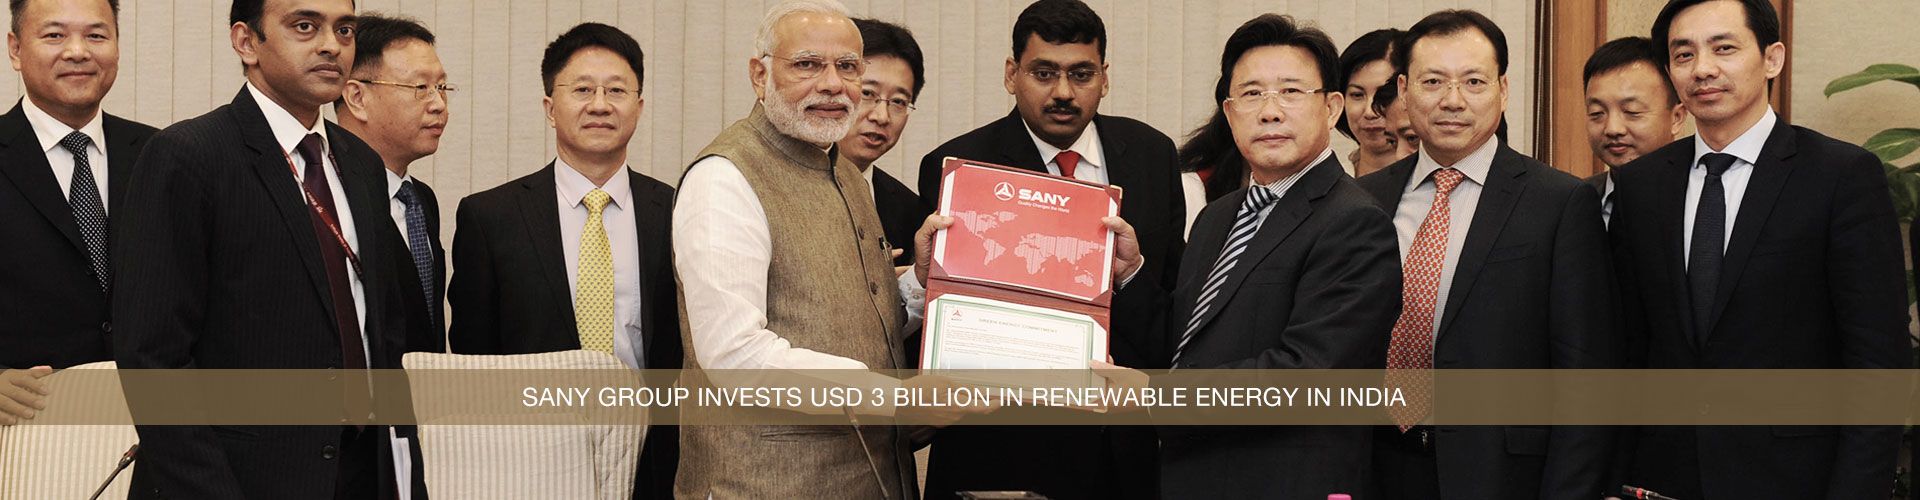 China's Sany Group to invest $3 billion in renewable energy sector in India